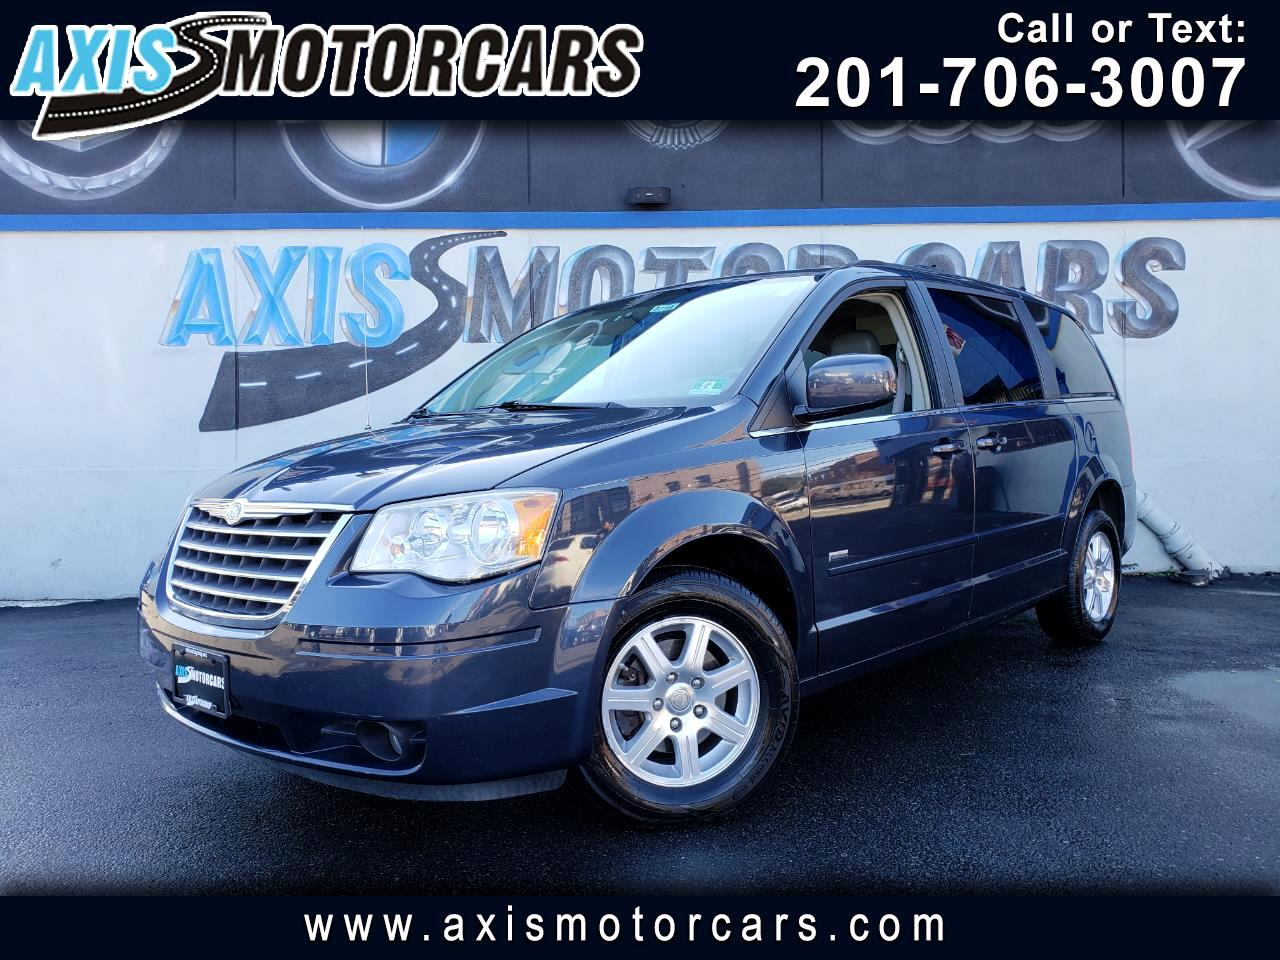 2008 Chrysler Town & Country TOURING  w/Rear Entertainment System Navigation